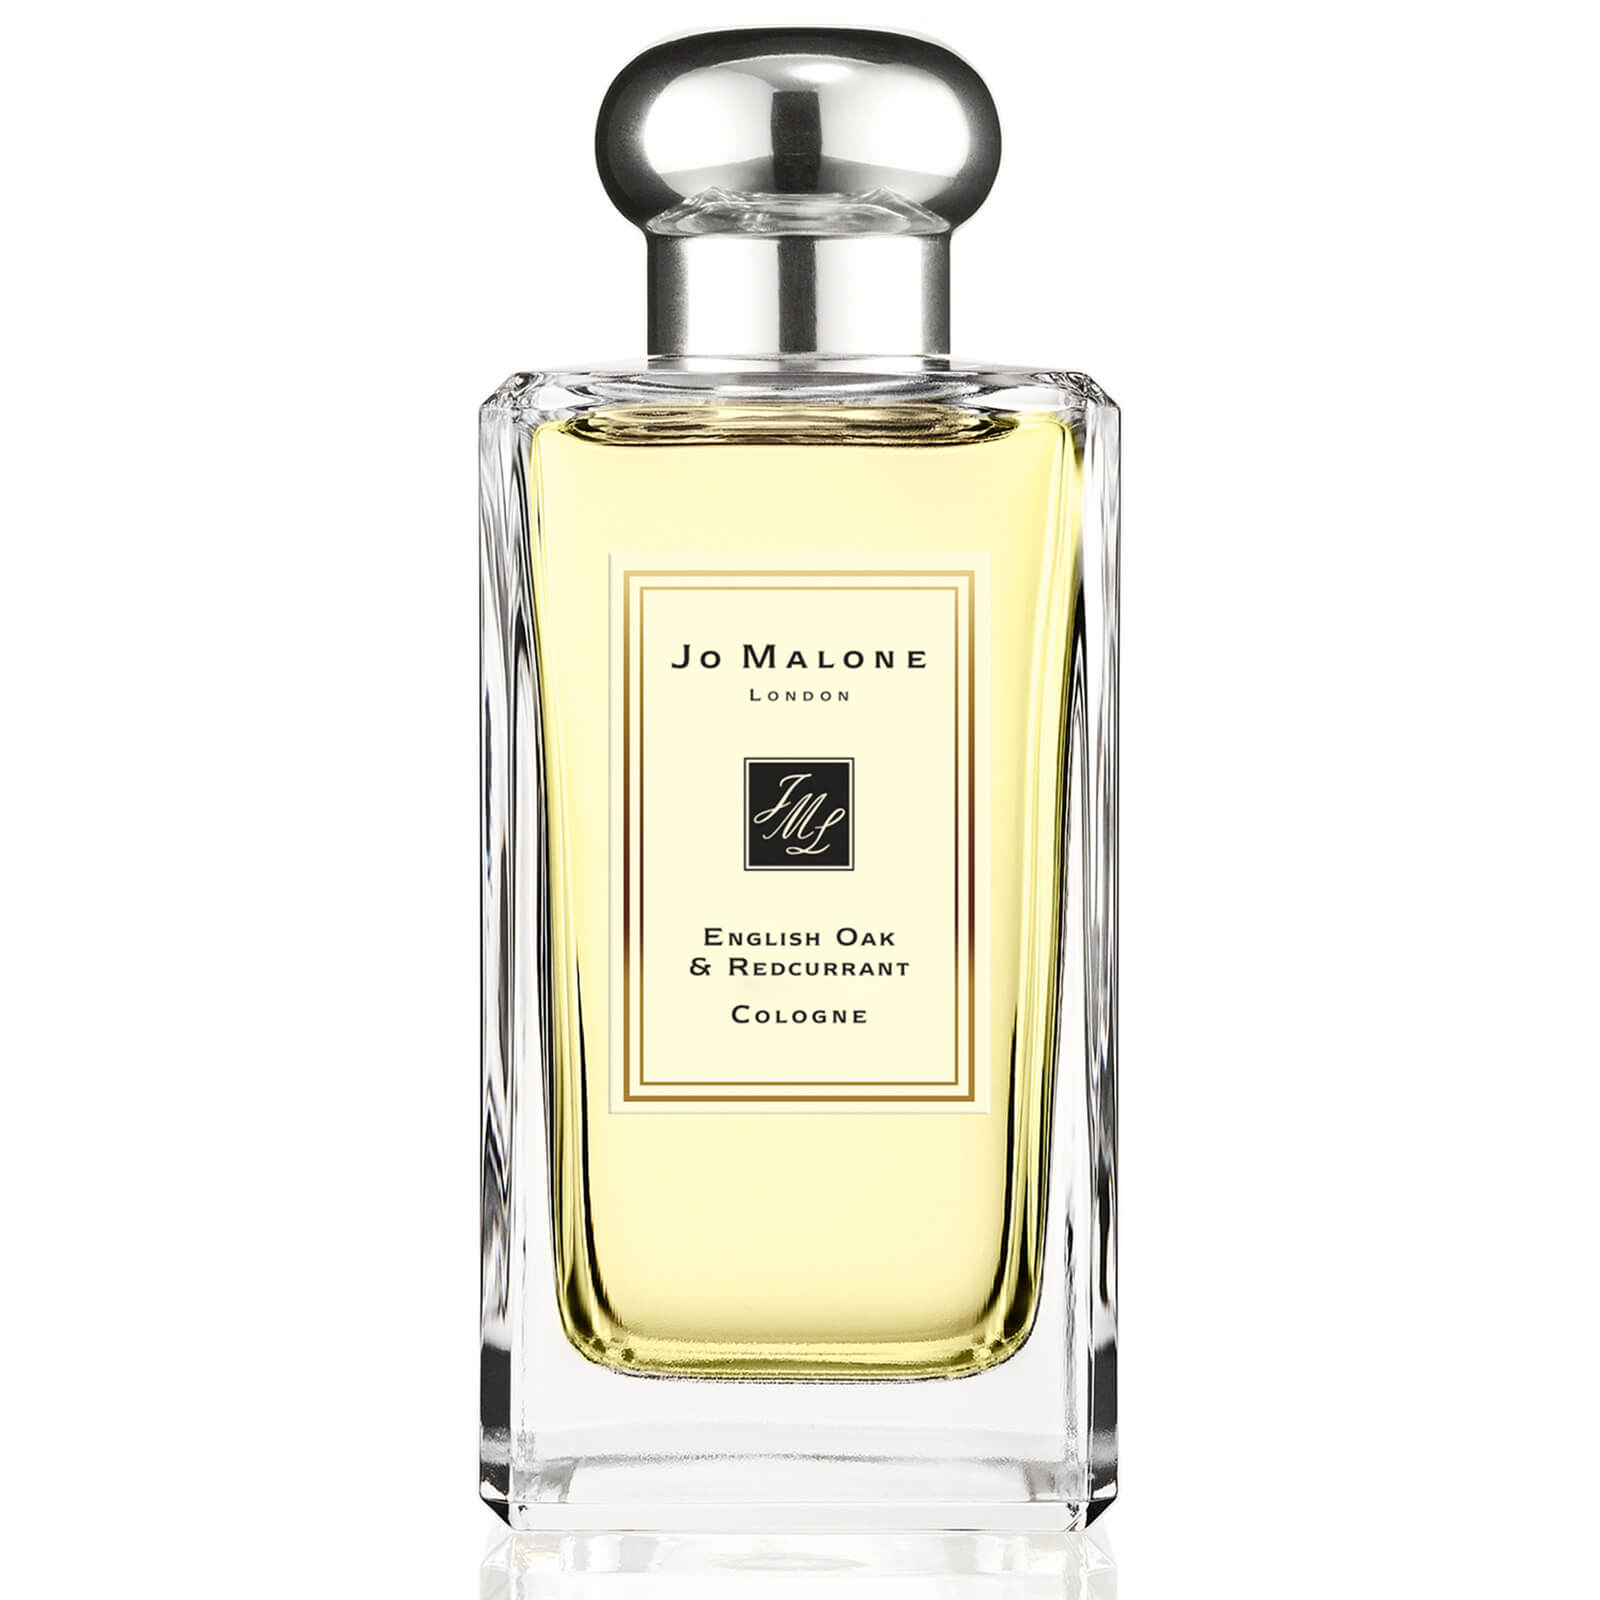 Jo Malone London English Oak and Redcurrant Cologne (Various Sizes) - 100ml